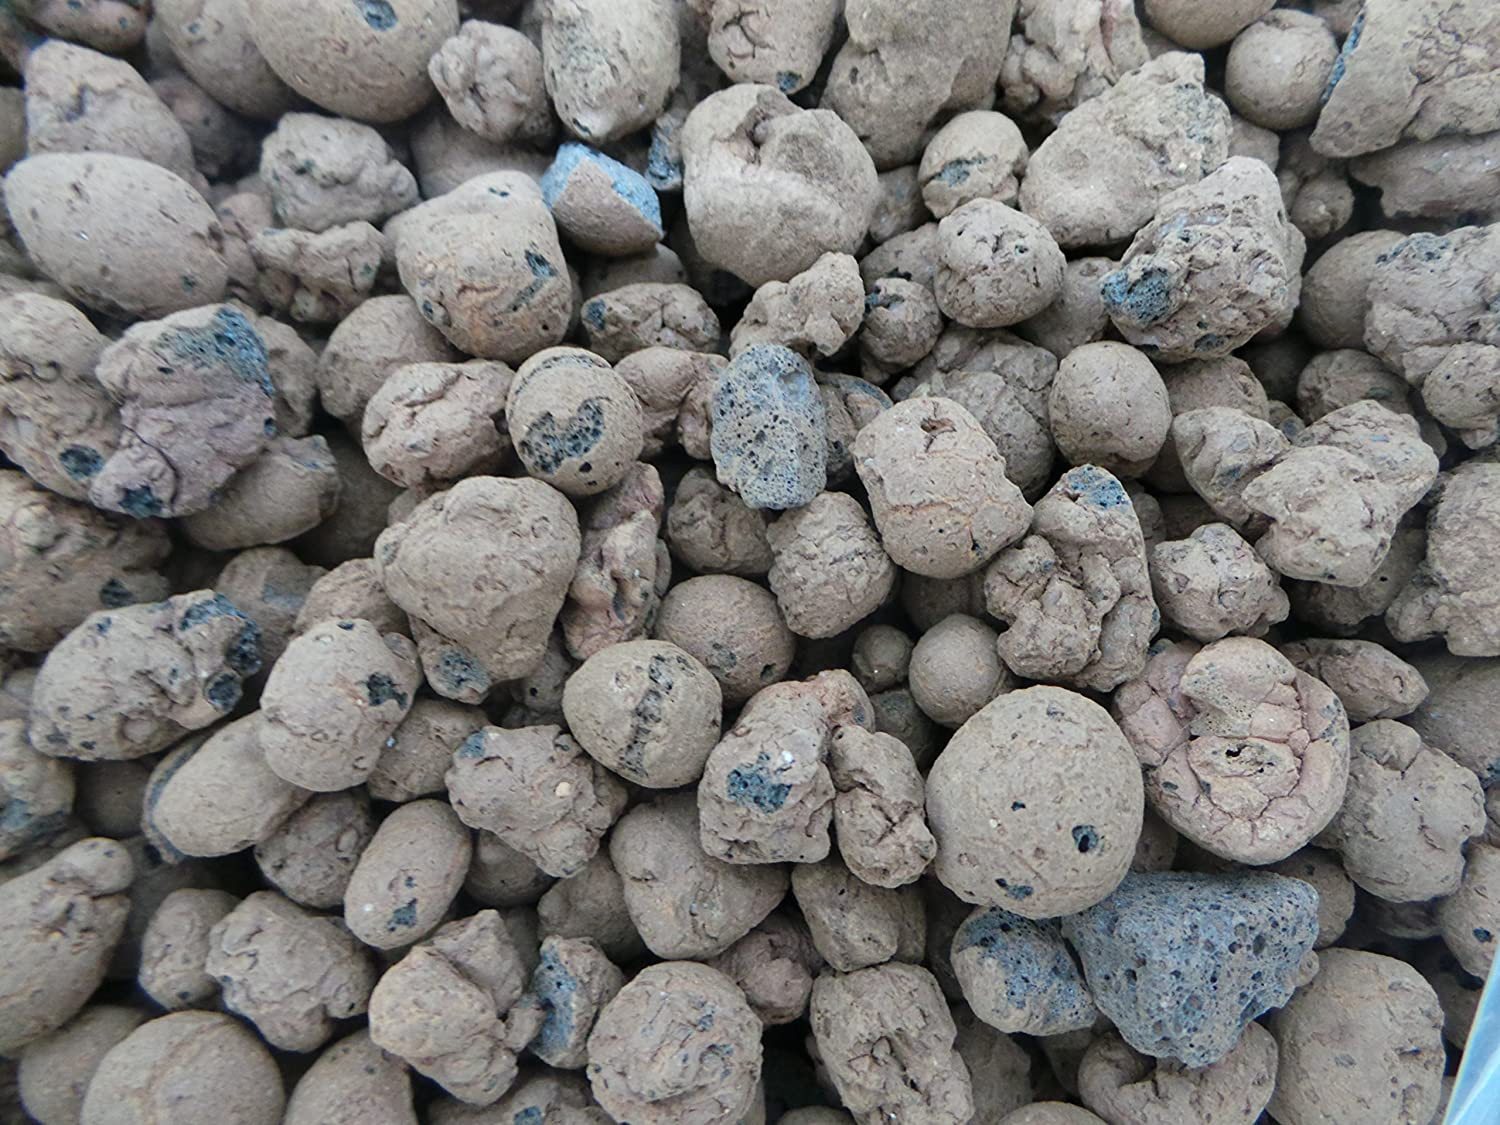 Sinclair 5L Bag Of Hydoleca Clay Pebbles Add To Compost To Reduce Root Rot